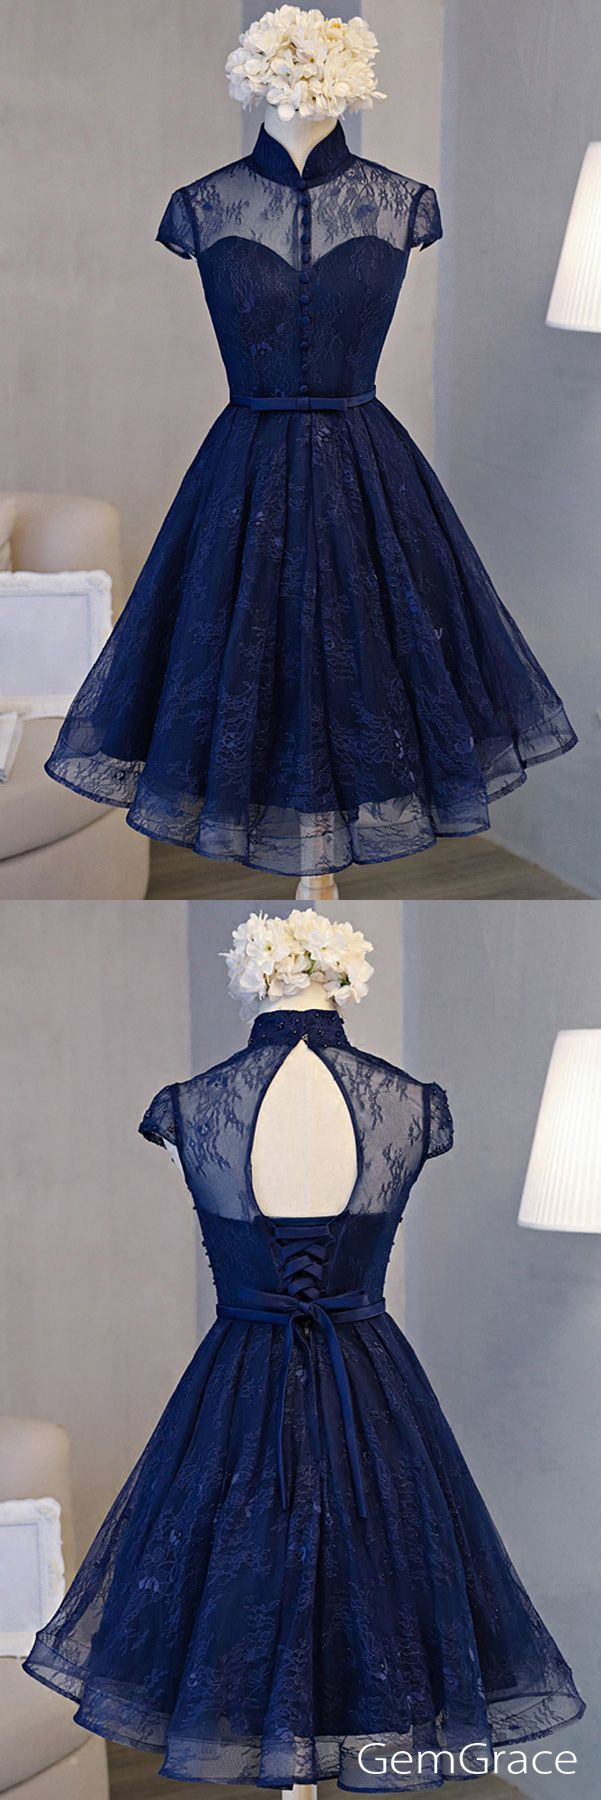 Navy blue special high neck party prom dress